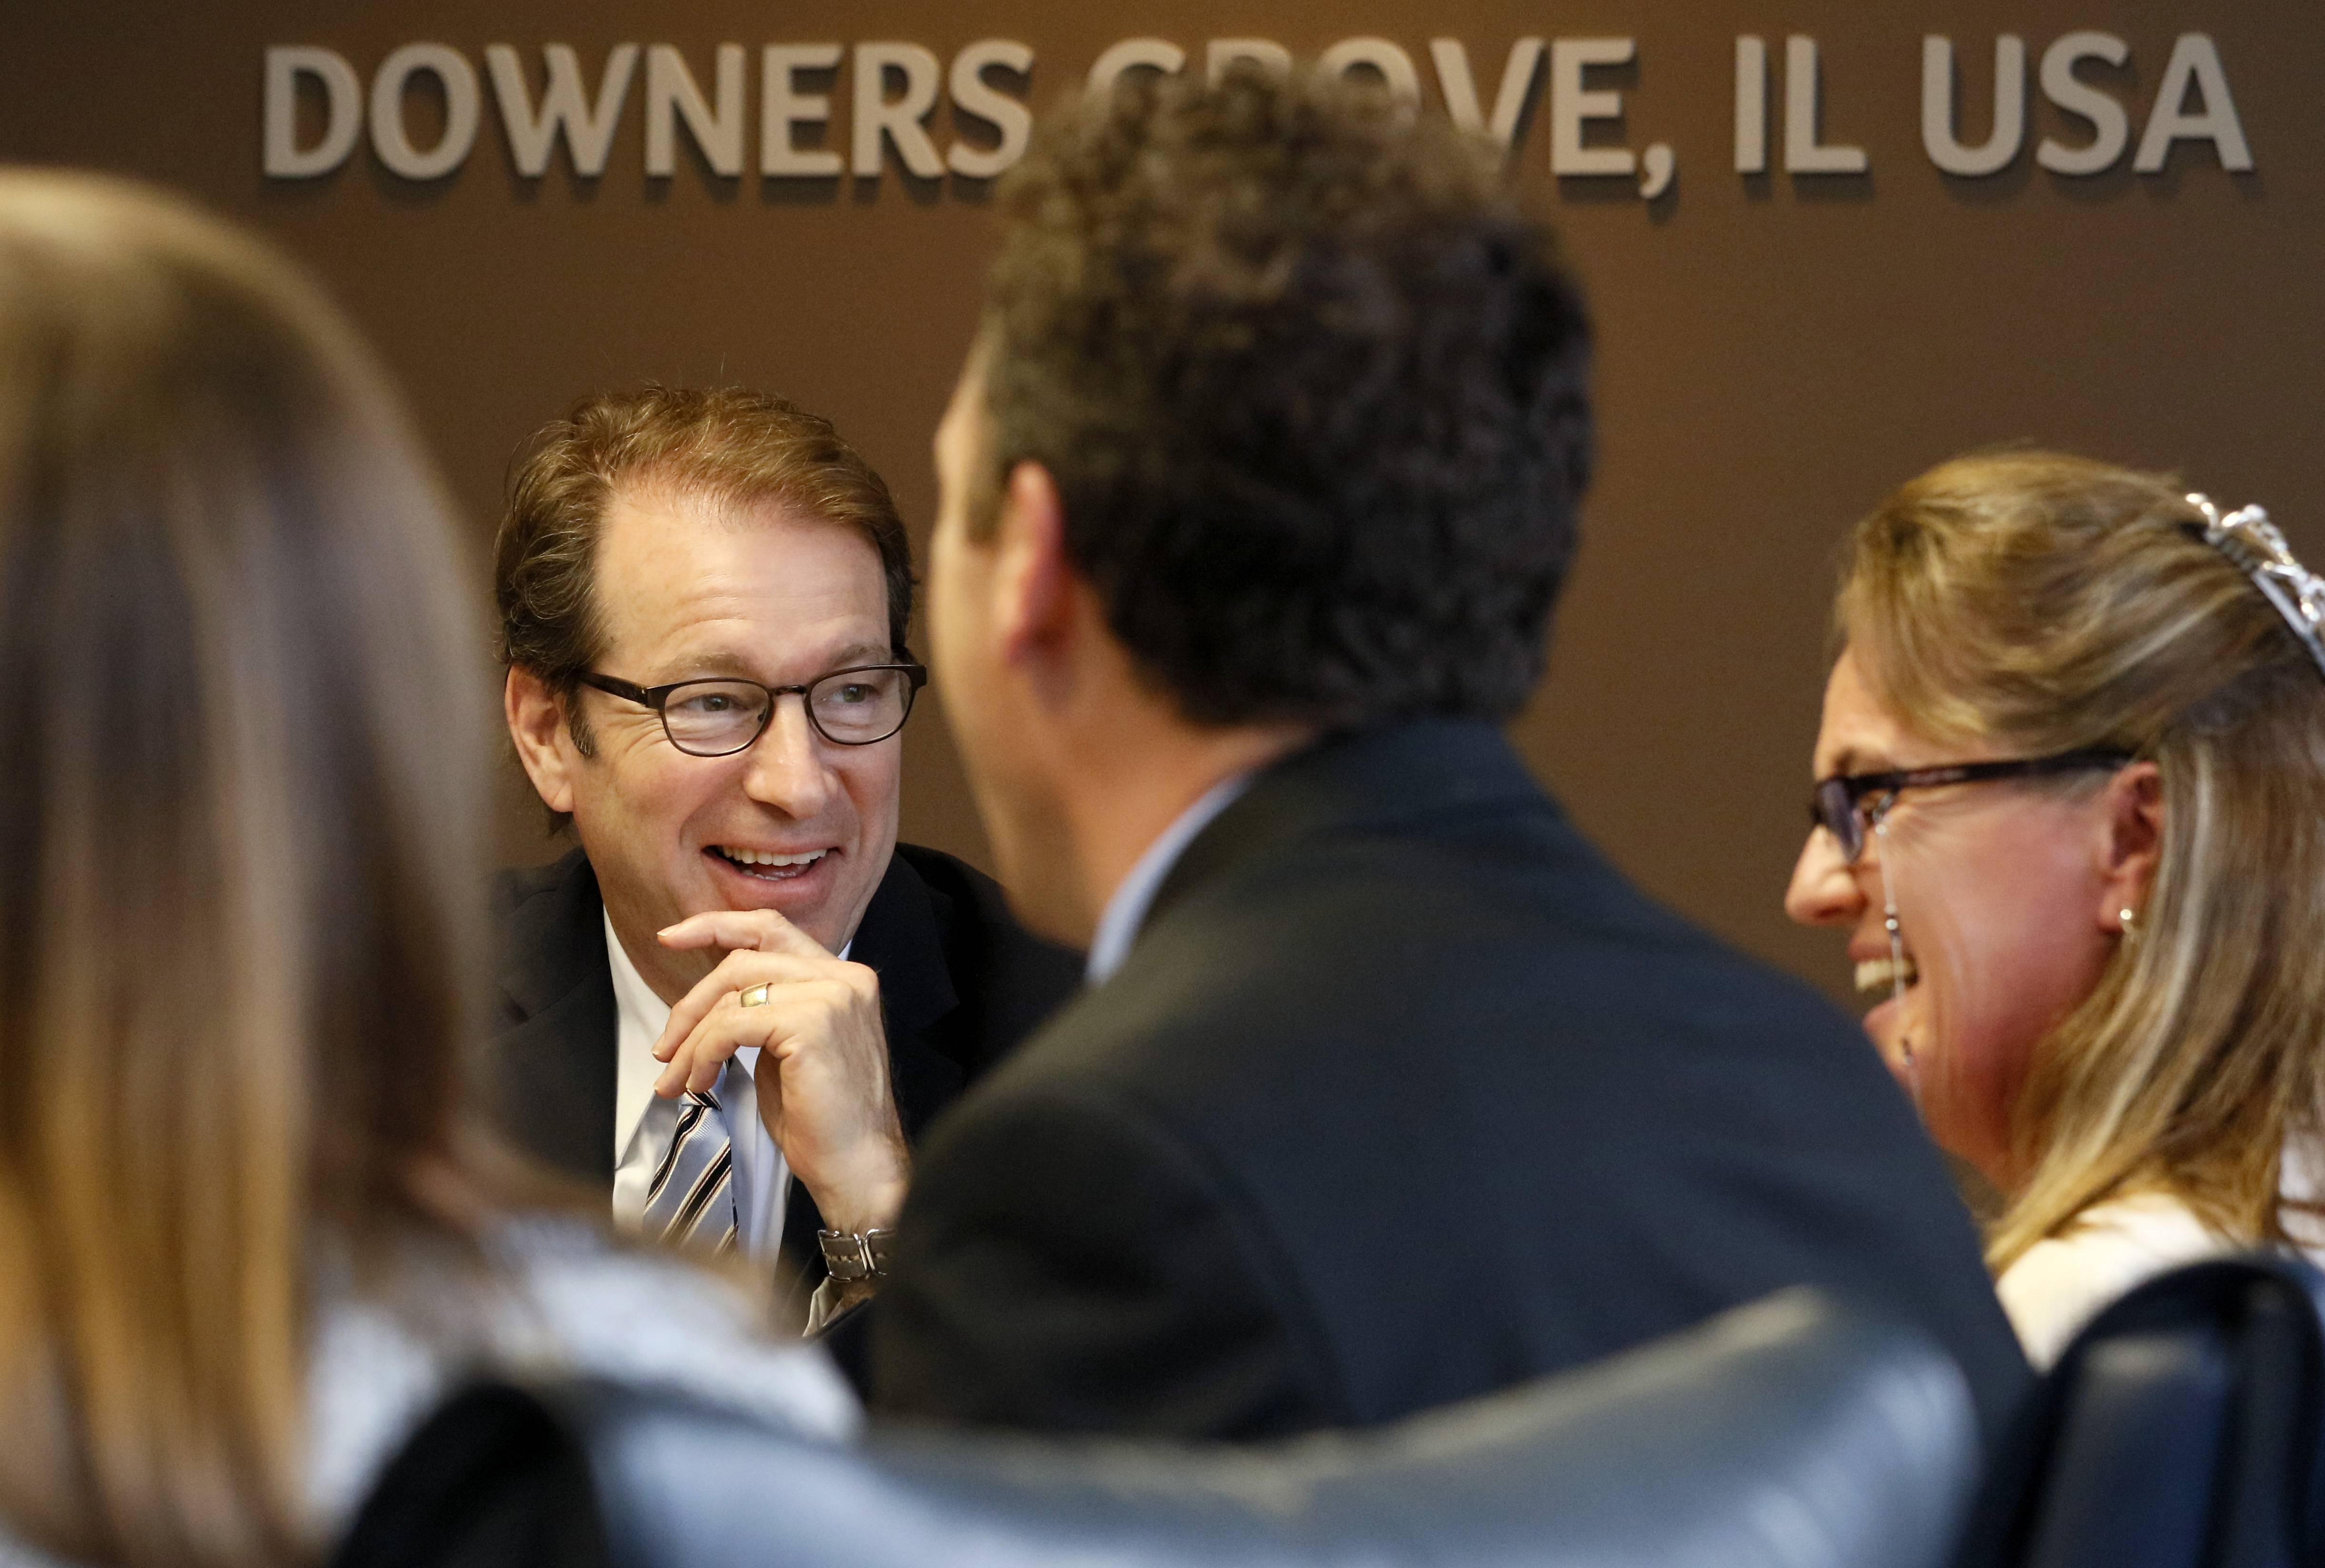 U.S. Rep. Peter Roskam of Wheaton listens to Sue Martin, right, clinical manager of the Aetna health Guardian Angel program, as she shares her work against the opioid crisis. Roskam visited Aetna while on the campaign trail. See more at dailyherald.com/video.